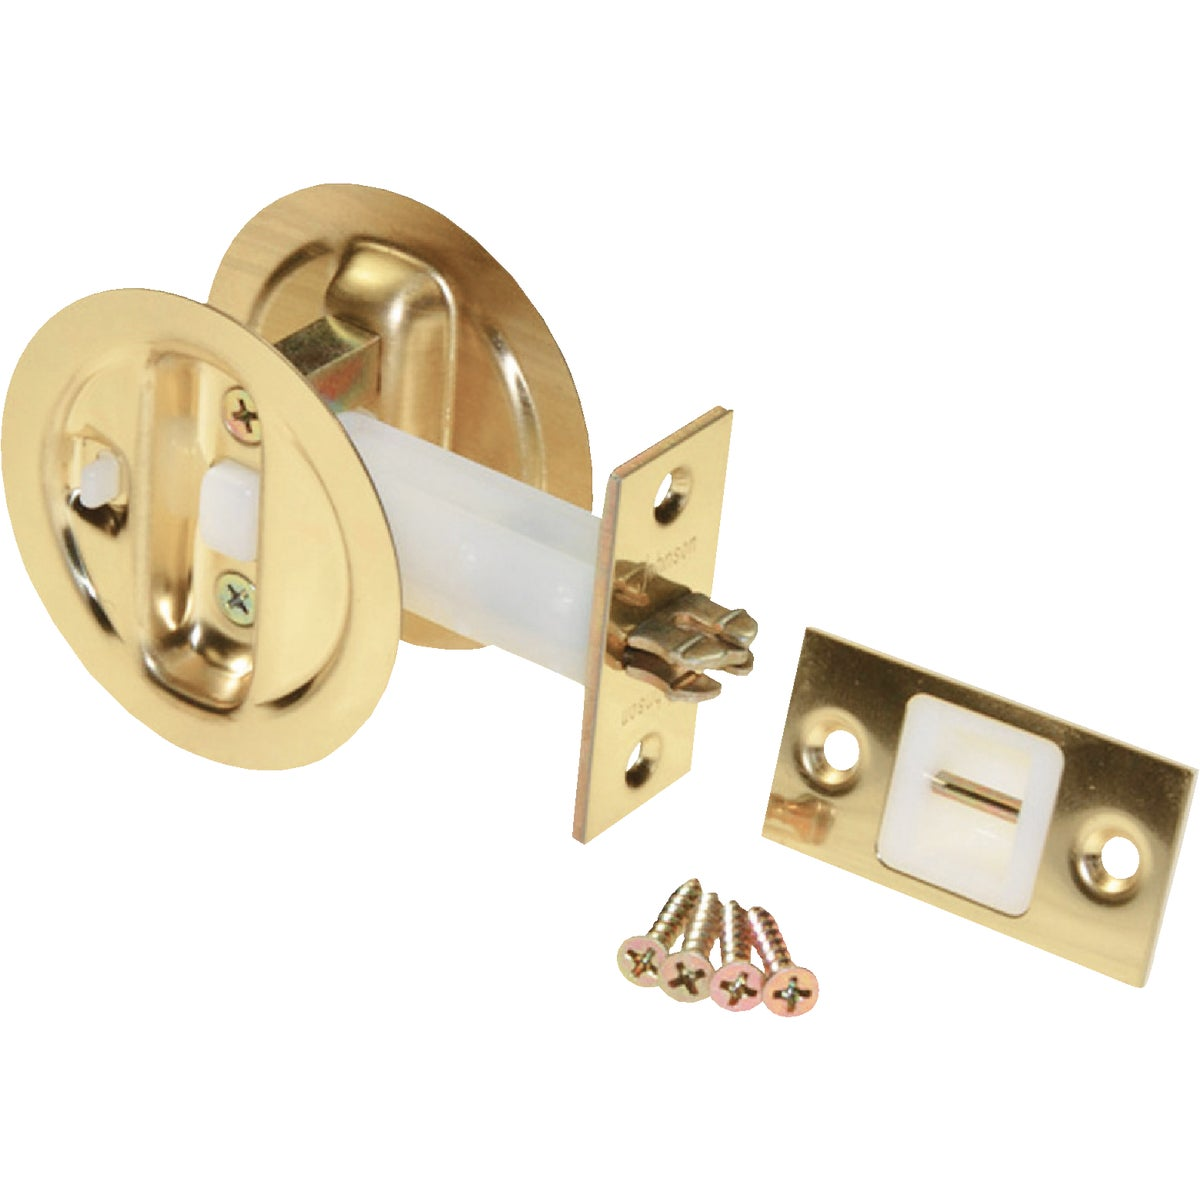 Johnson Prod. BRASS PRIVACY LOCK 15213PK1